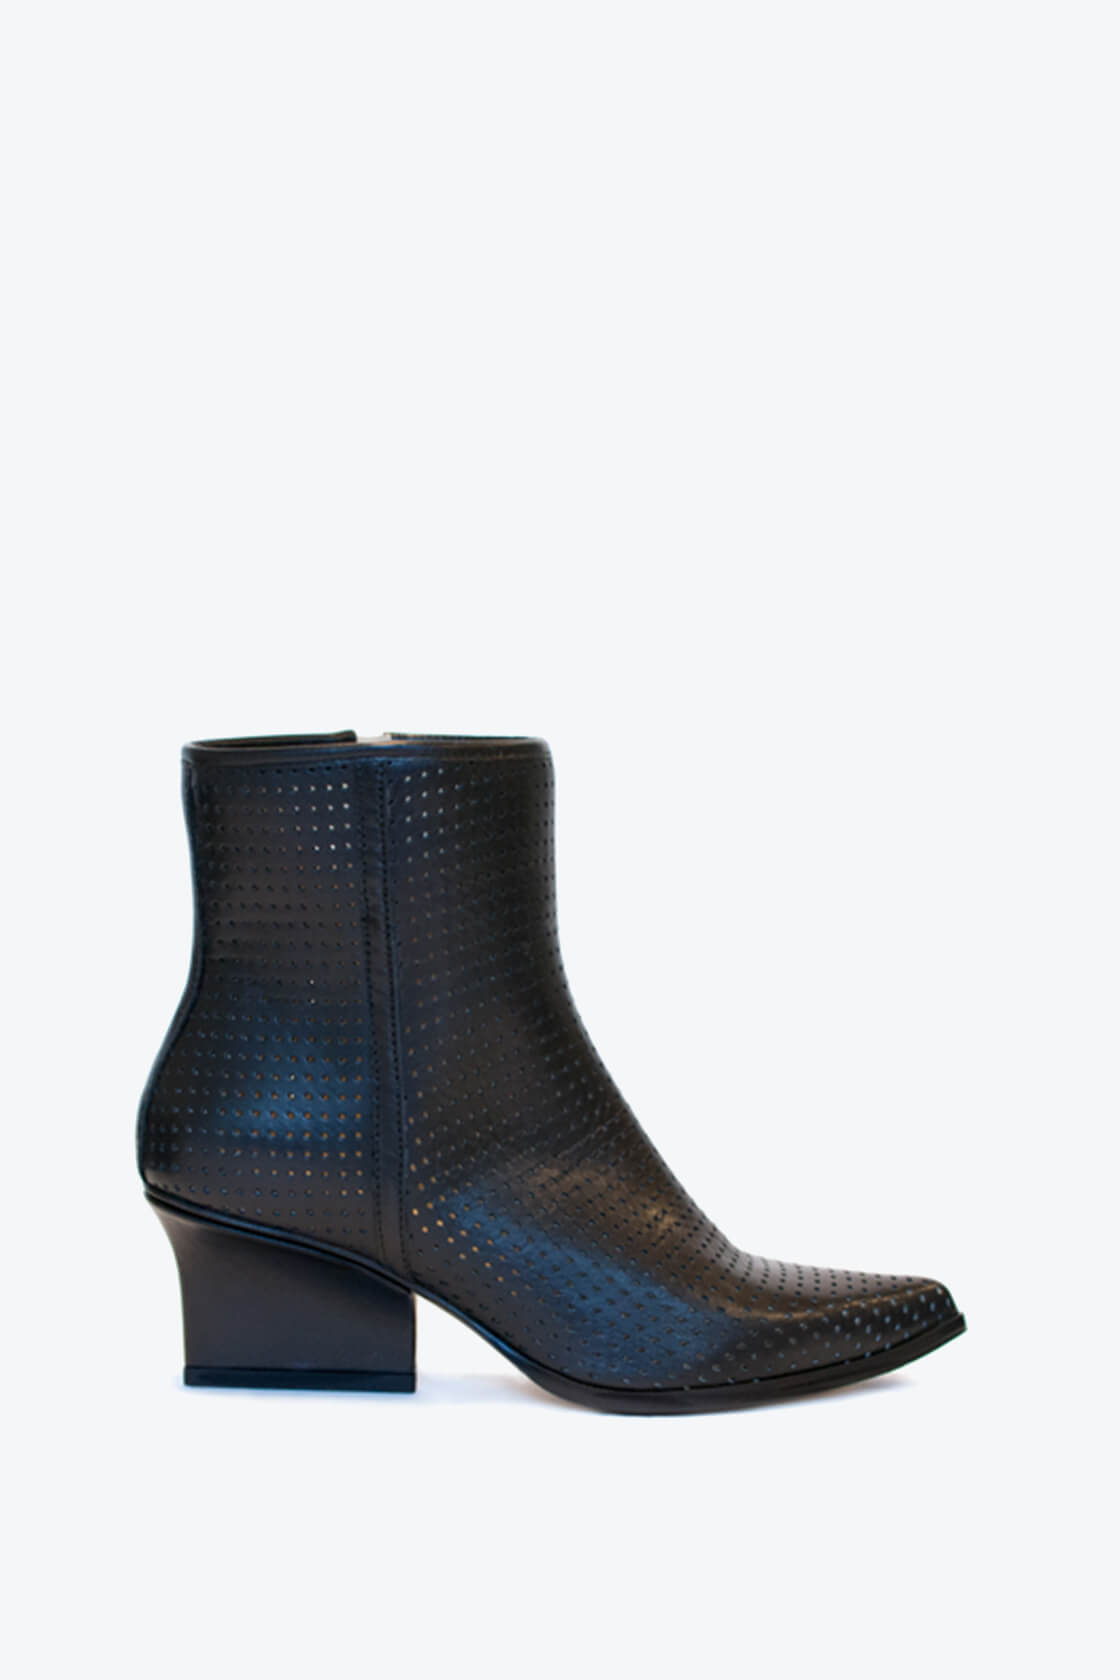 EJK0000037 Tommie ankle boots black 1